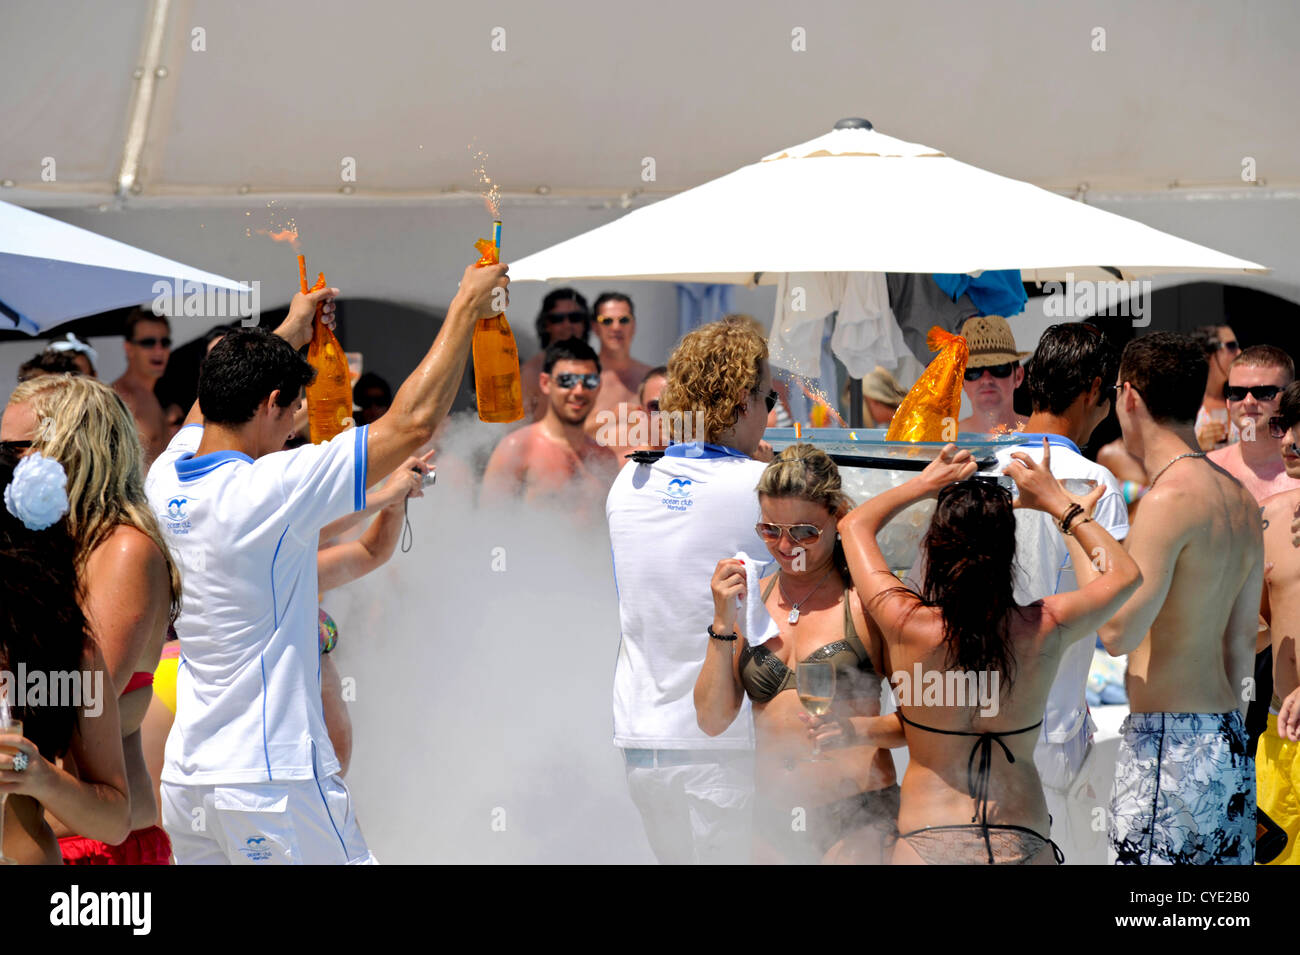 Waiters carrying bottles of Crystal champagne to a client at a pool party in Marbella - Stock Image